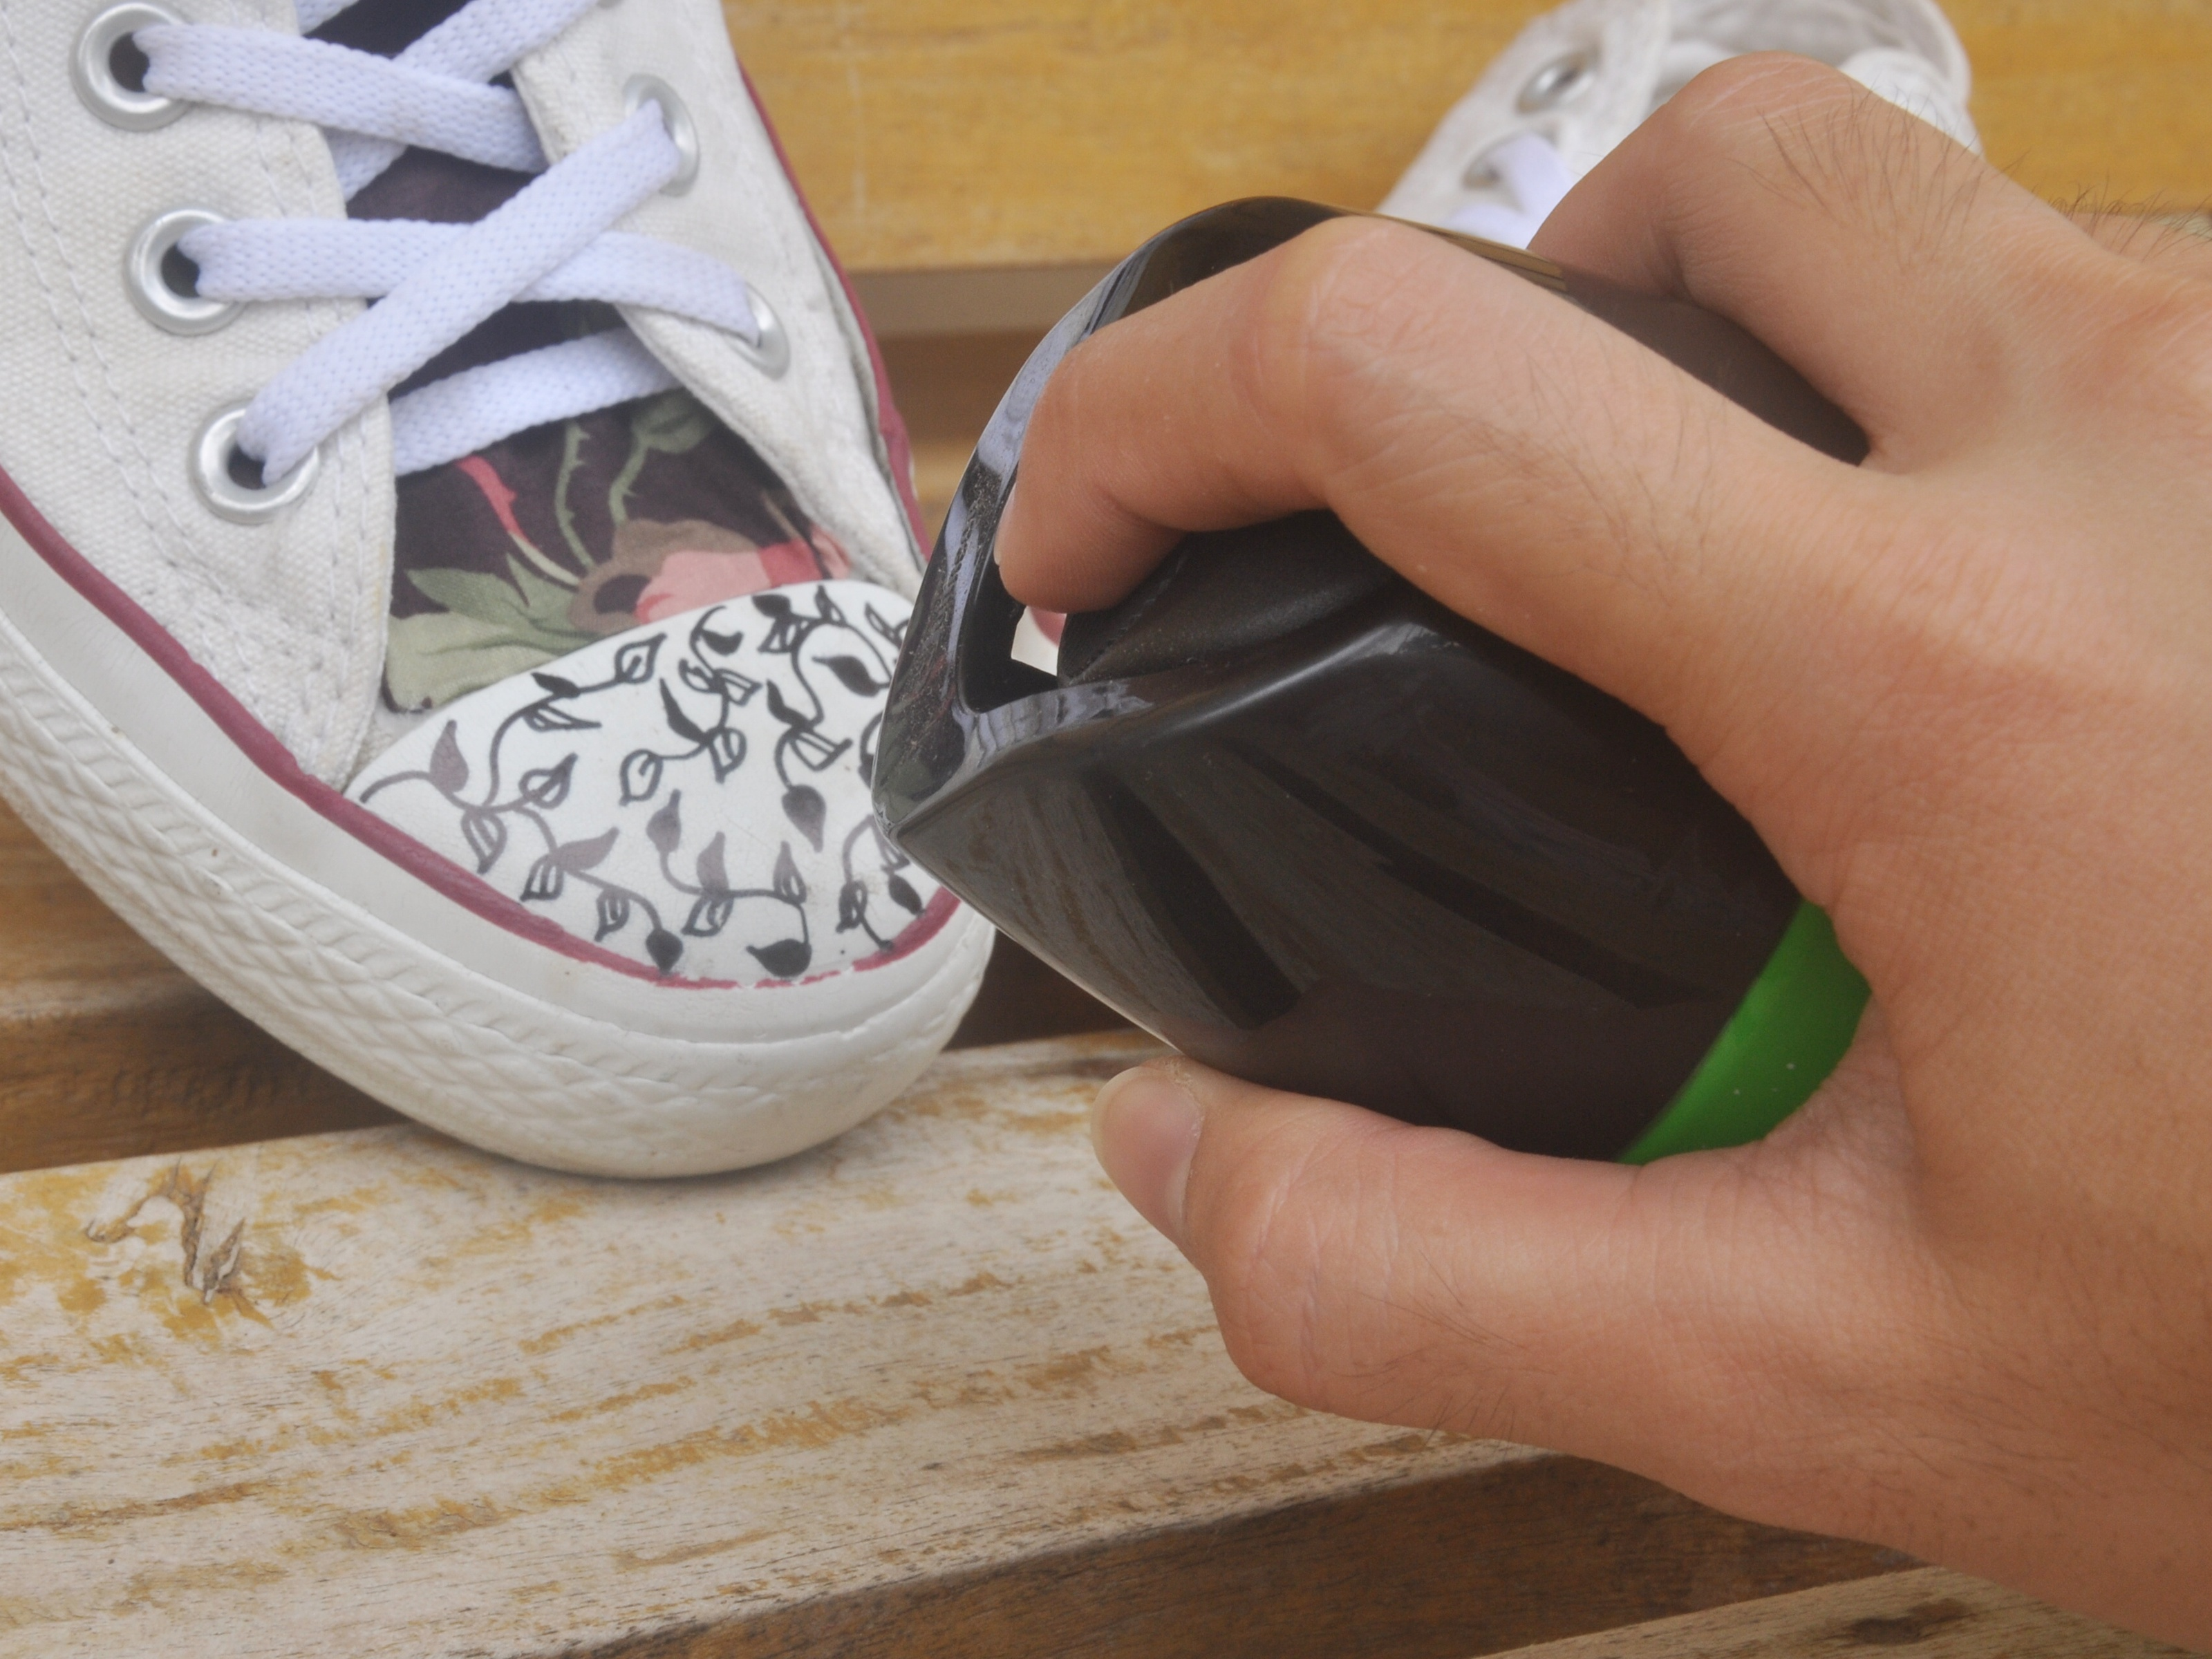 Drawn converse embellished 3 Shoes Decorate wikiHow